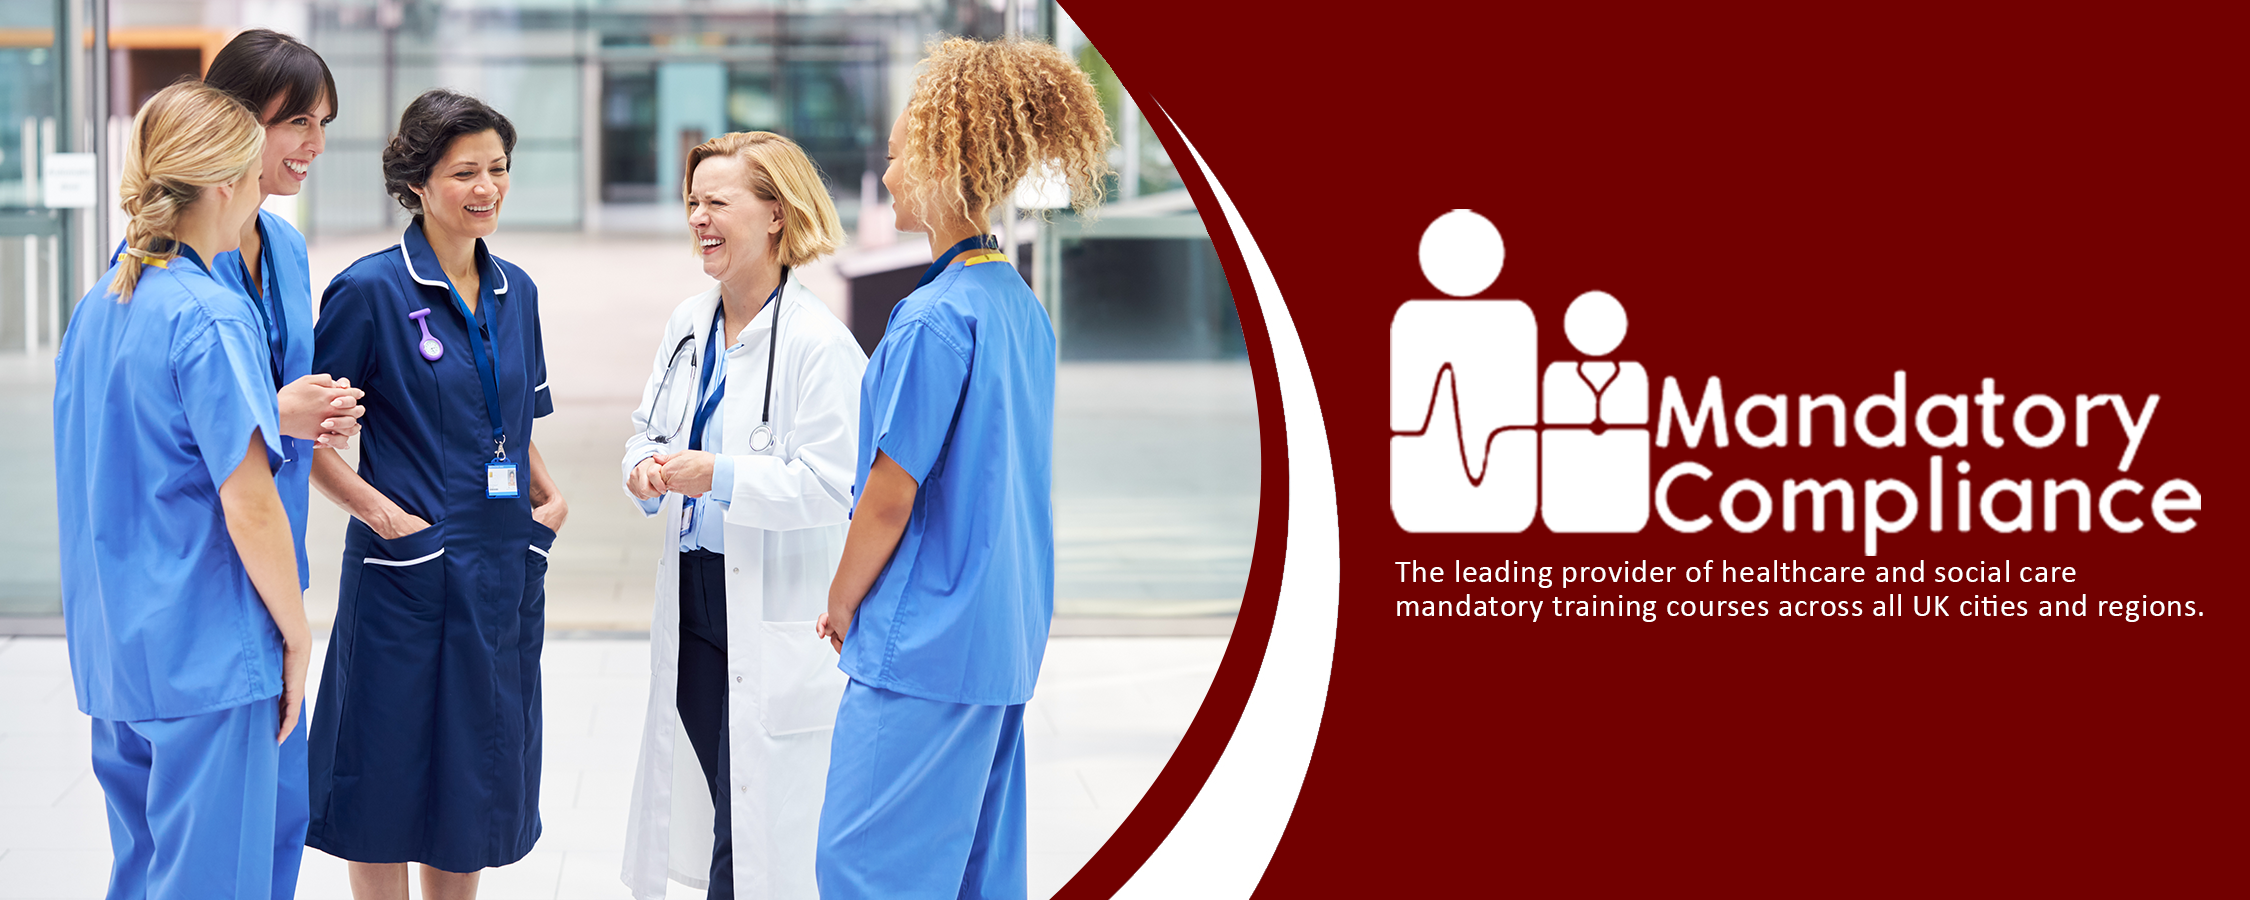 Clinical Audit - Online Learning Courses - E-Learning Courses - Mandatory Compliance UK--